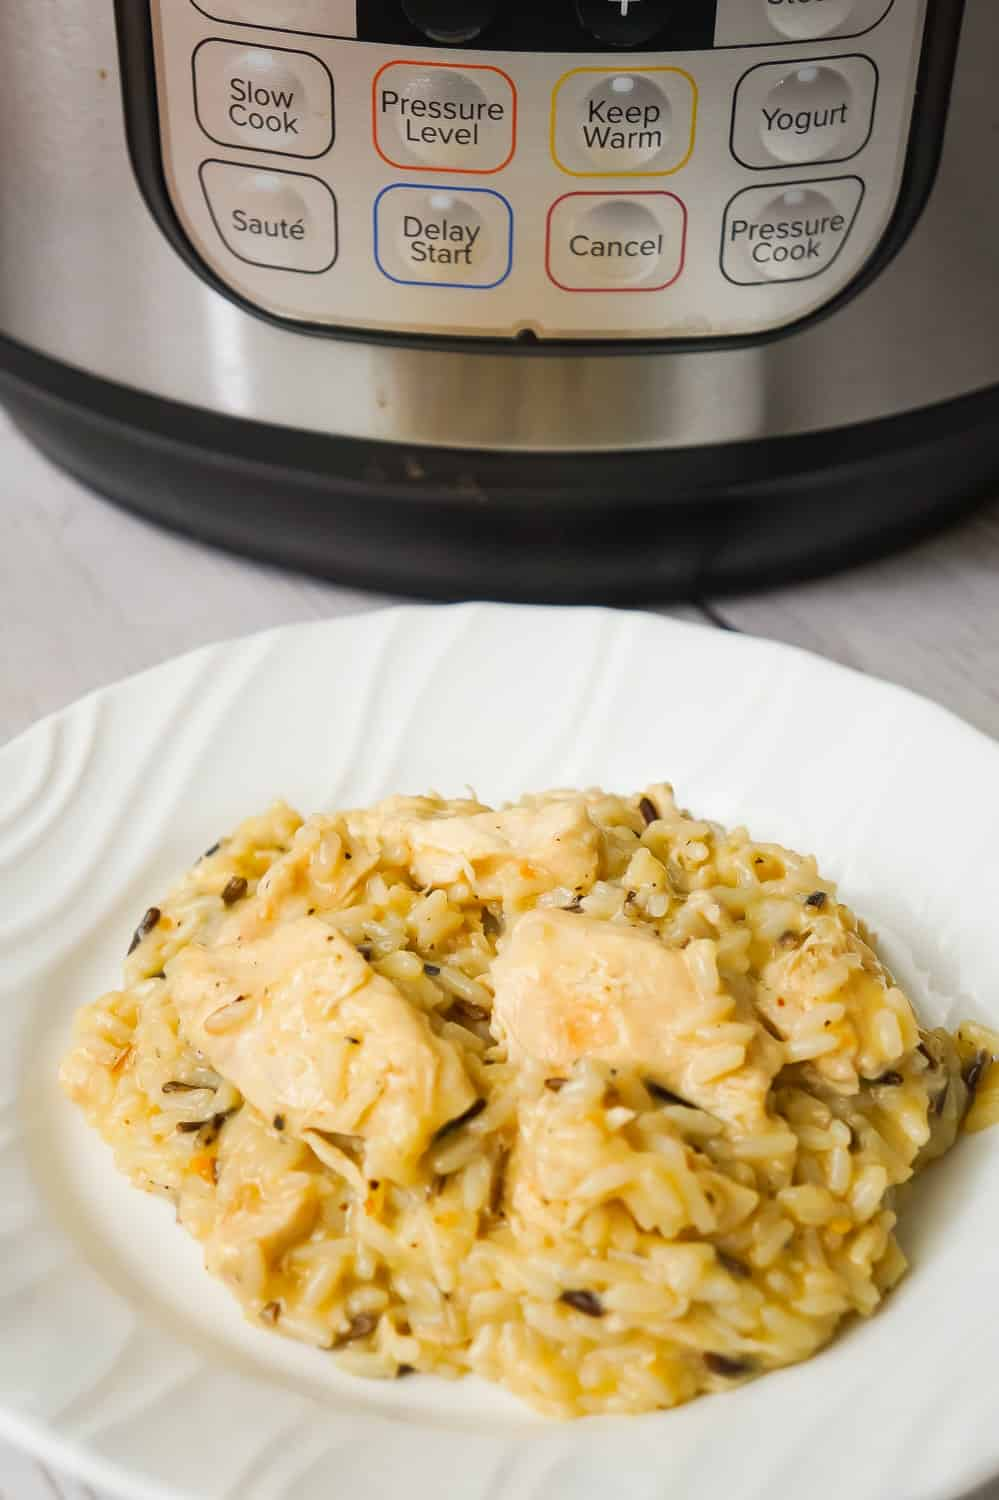 Instant Pot Lemon Pepper Chicken and Rice is an easy and delicious chicken dinner recipe. This creamy long grain and wild rice dish is loaded with tender chicken breast chunks.